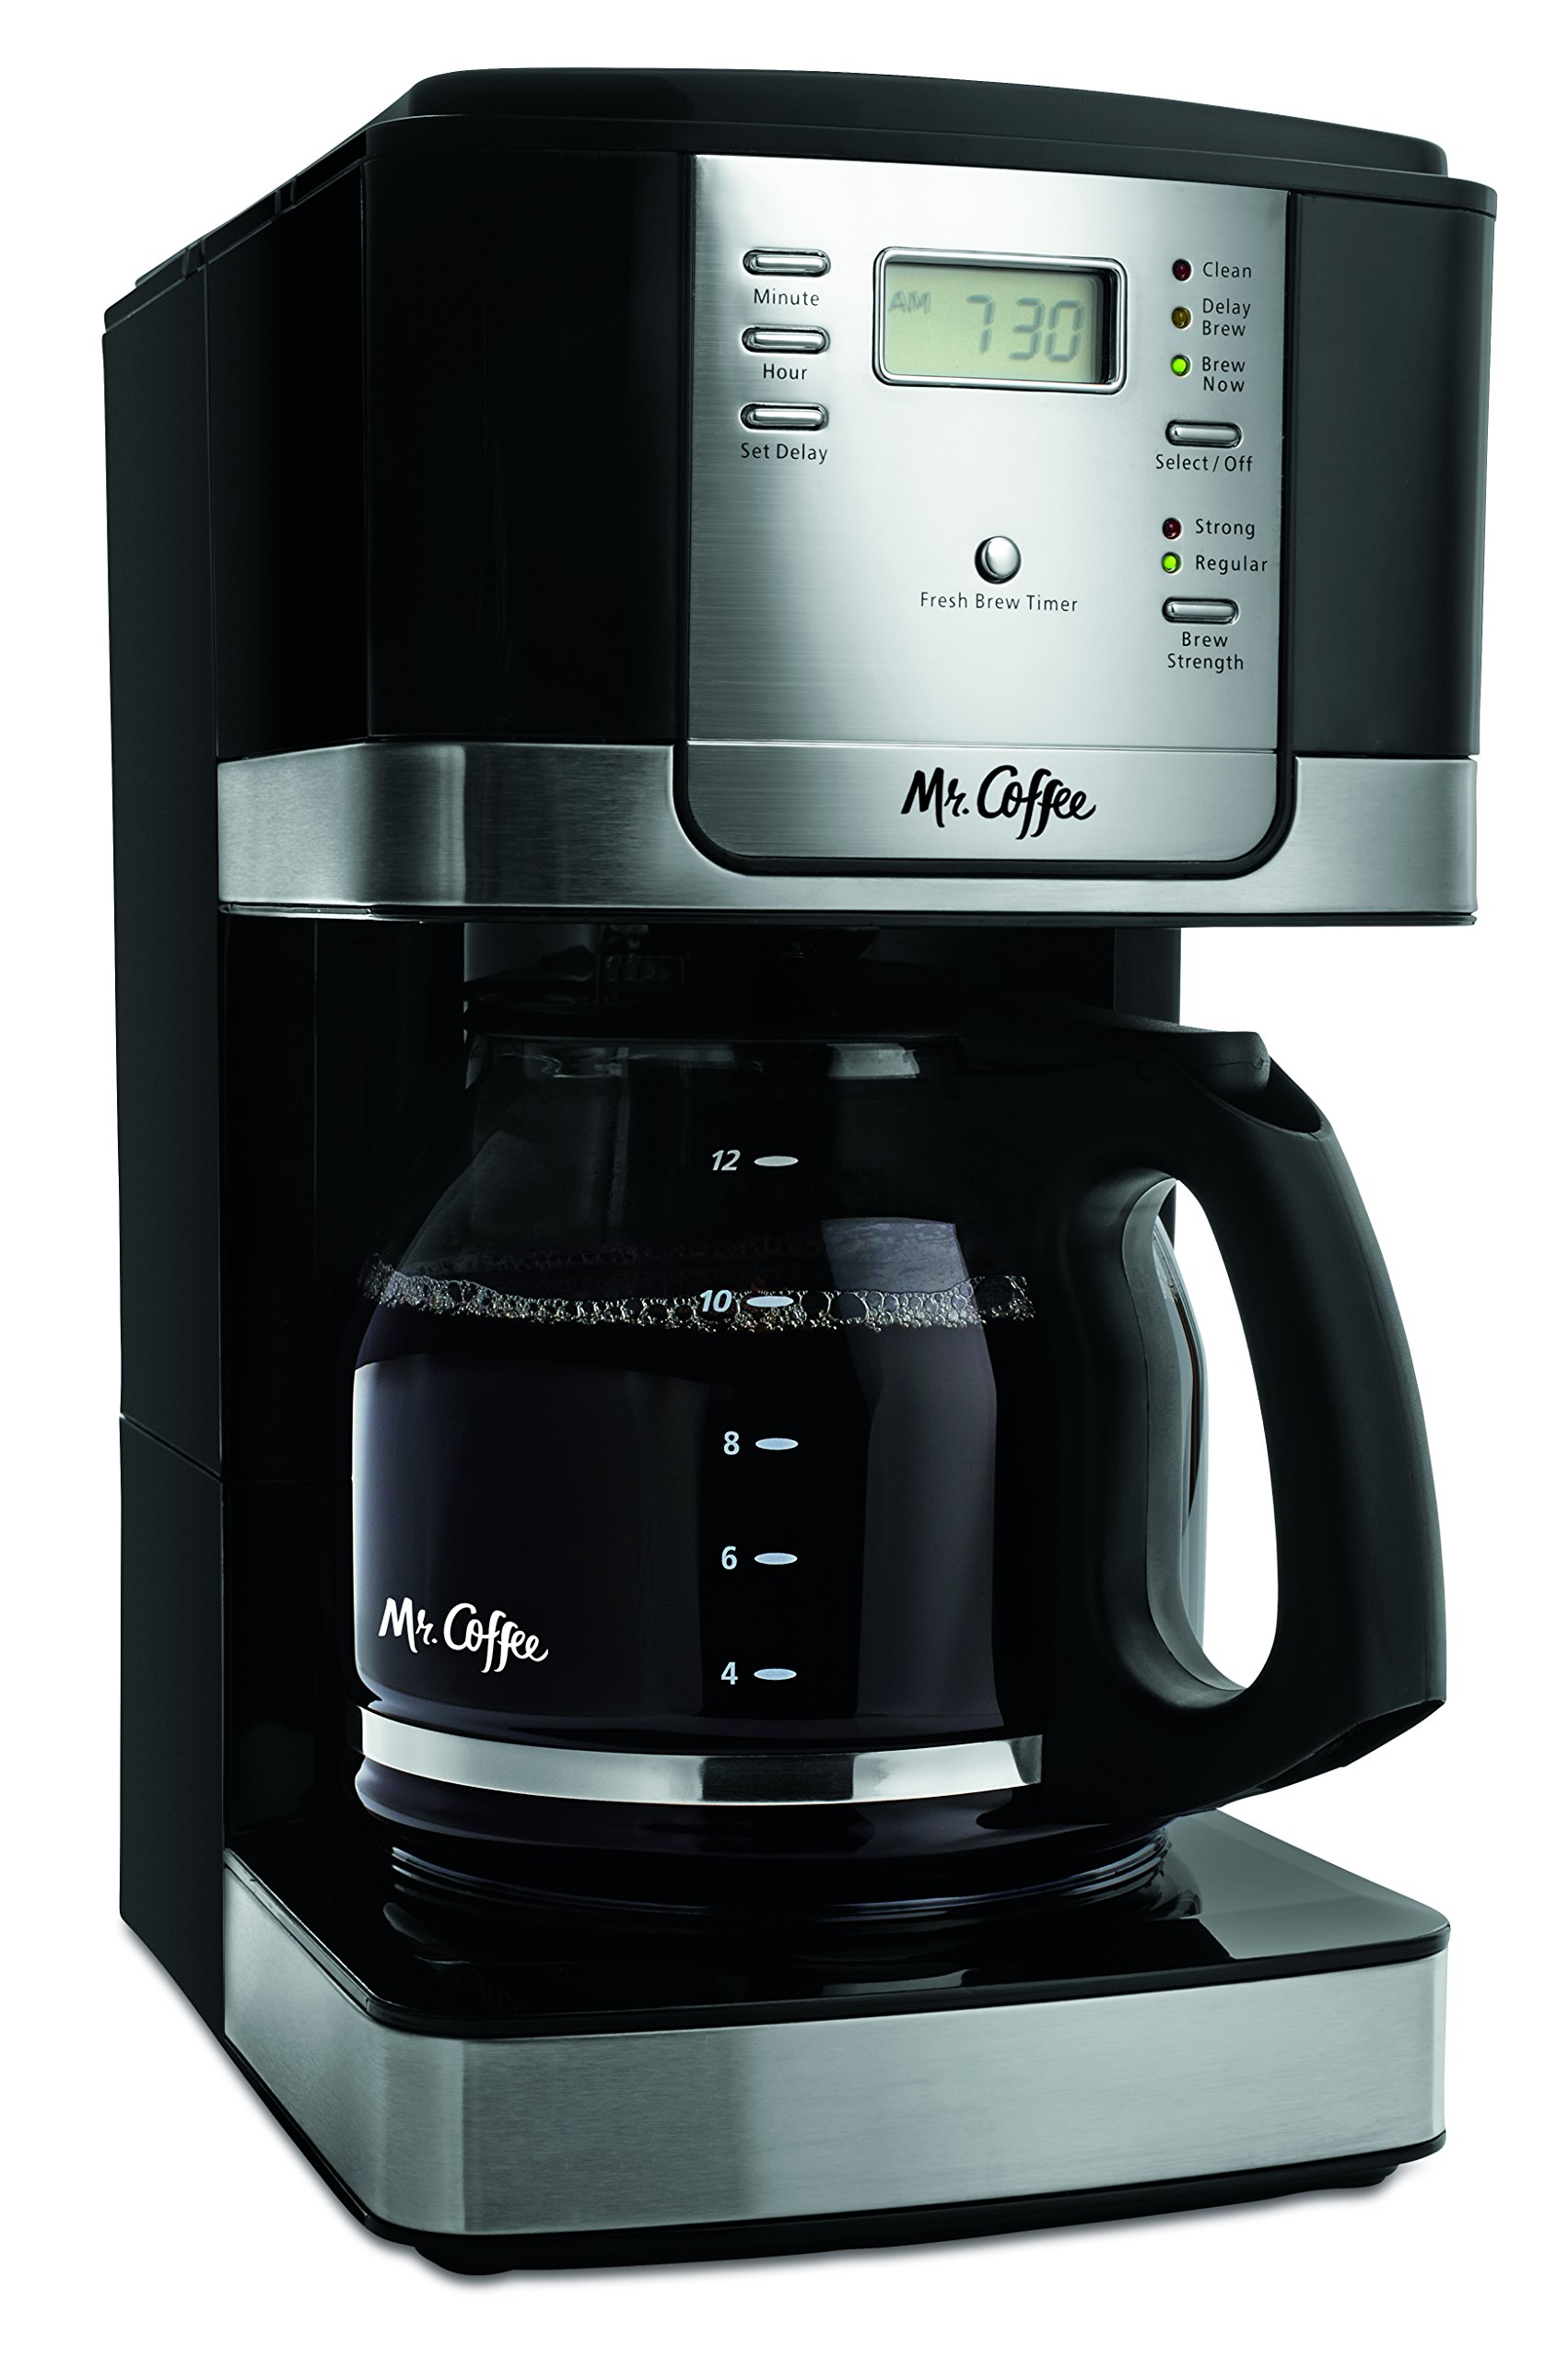 Mr. Coffee JWX27-NPA 12-Cup Progammable Coffeemaker, Black by Mr. Coffee